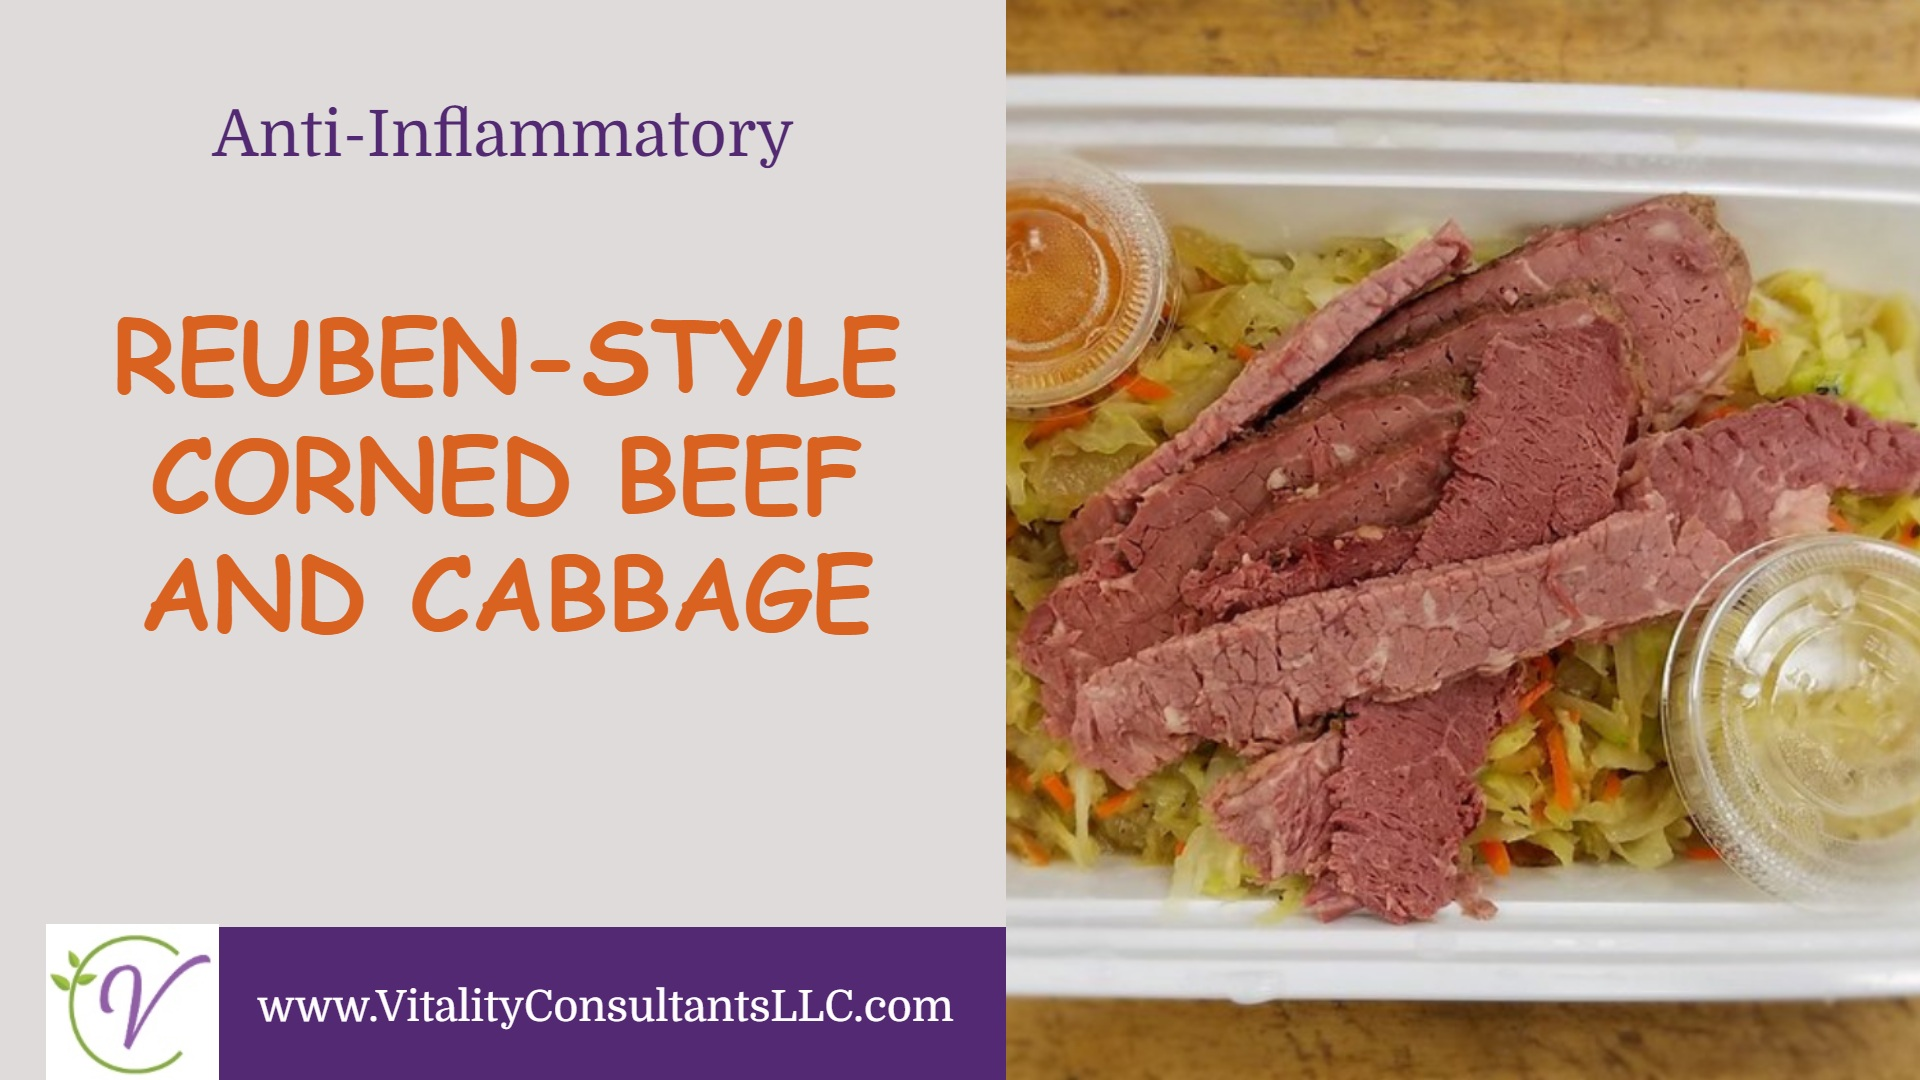 Reubne-Style Corned Beef